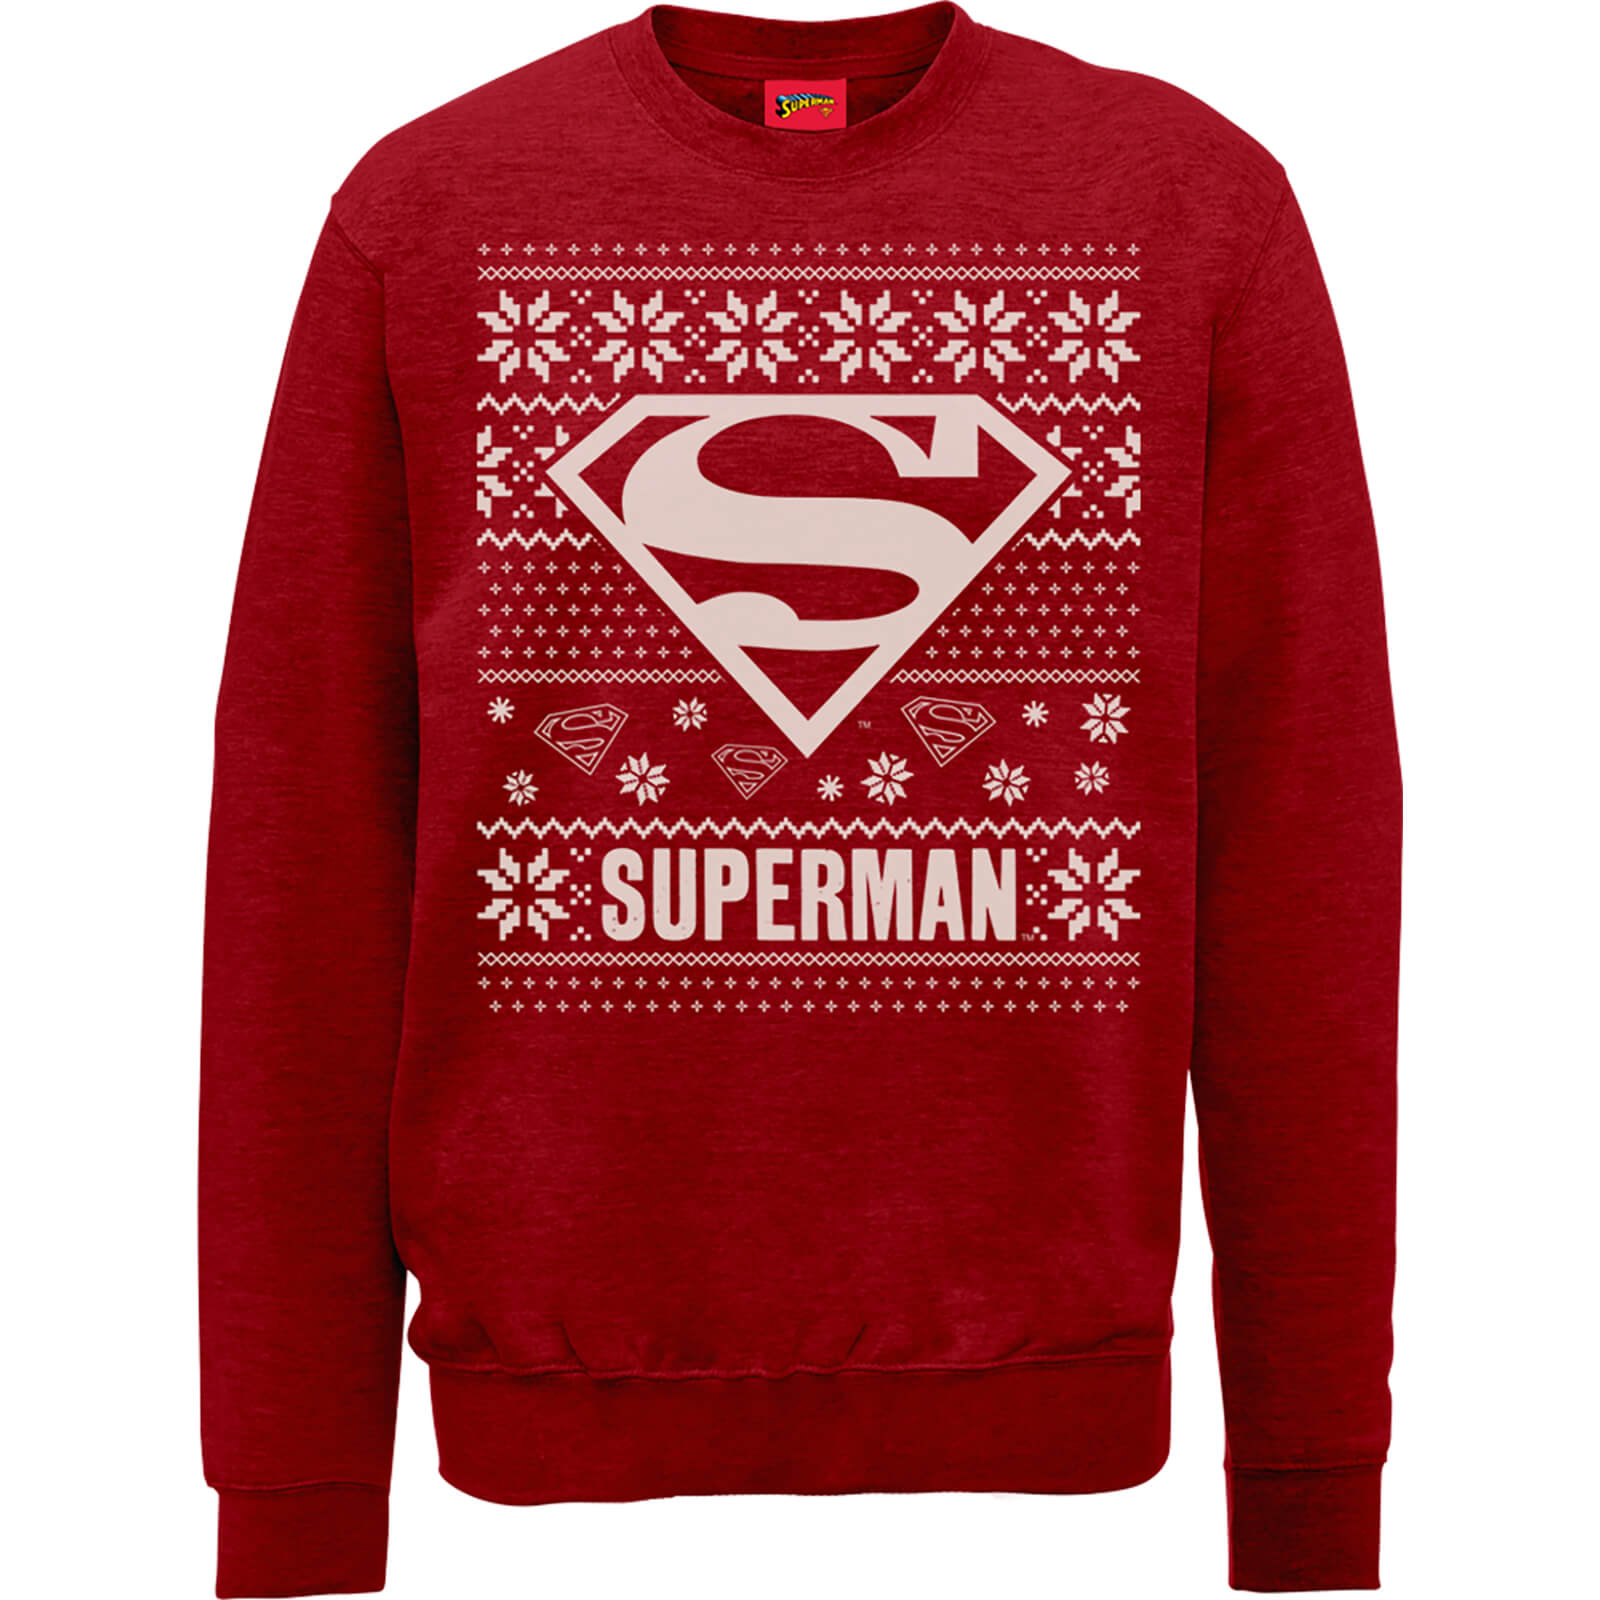 DC Superman Christmas Knit Logo Red Christmas Sweatshirt